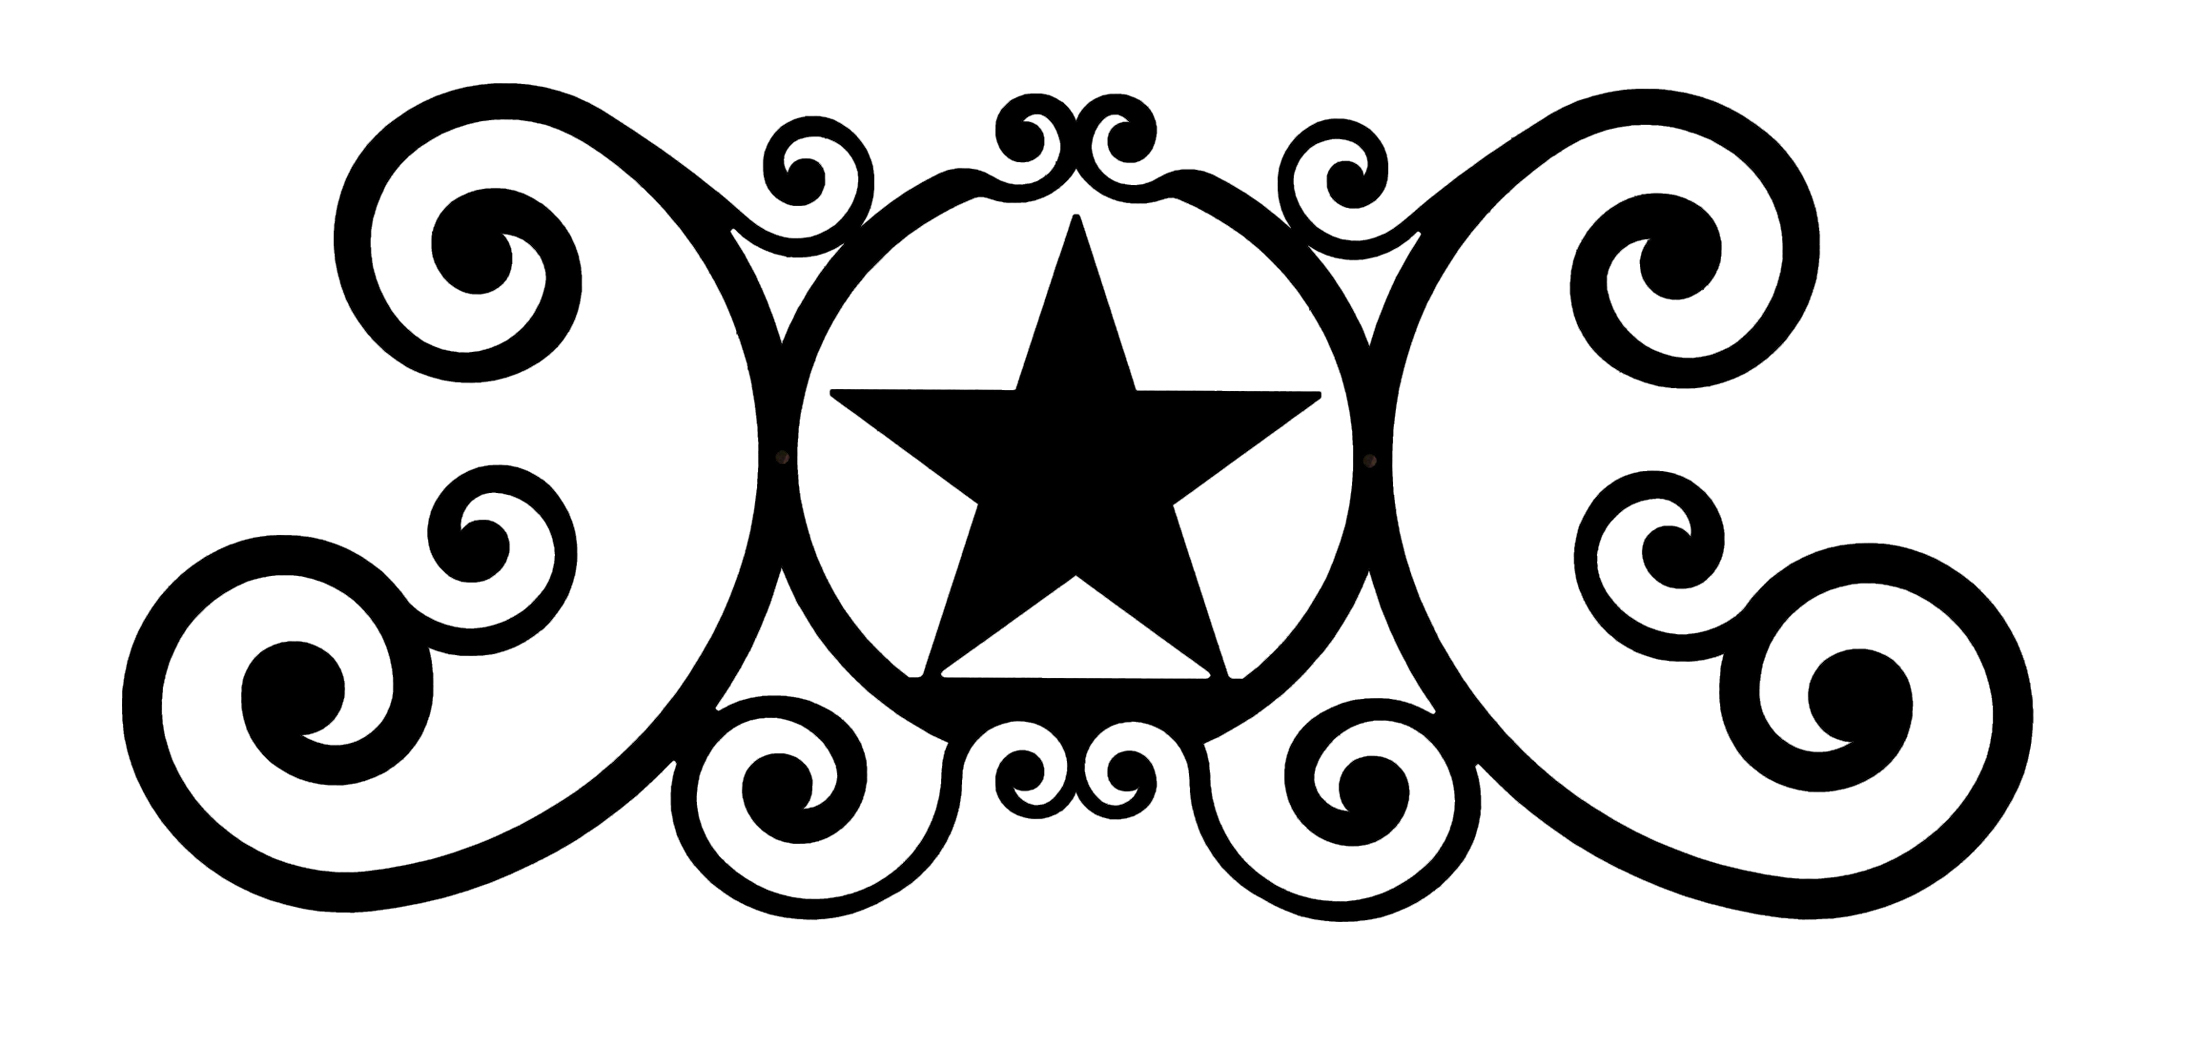 Star - Over Door Plaque